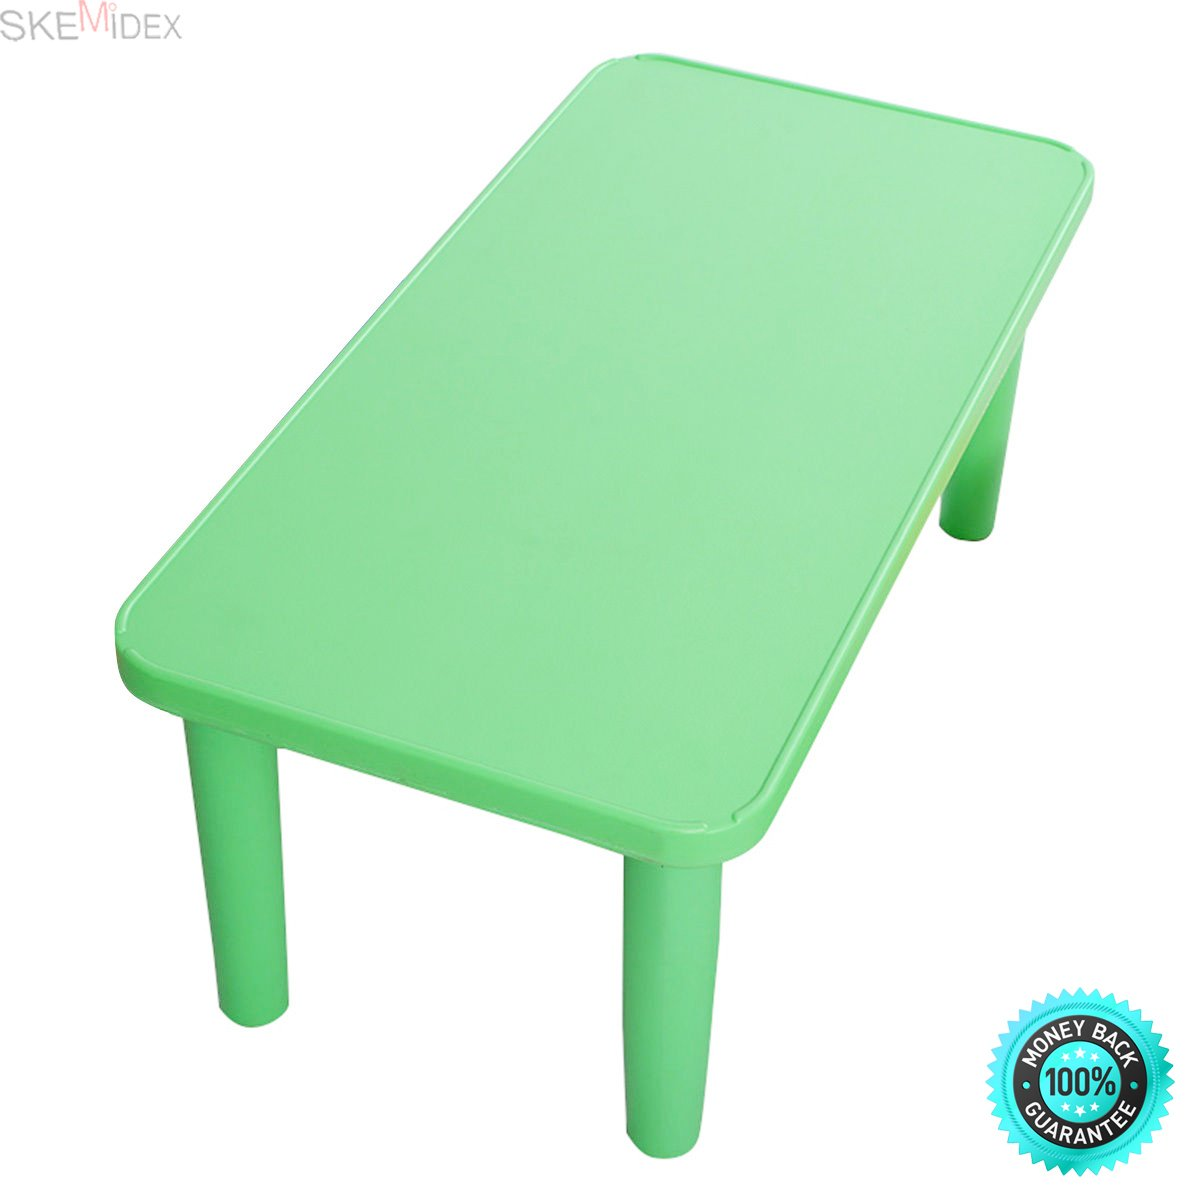 SKEMiDEX---Kids Portable Plastic Table Learn and Play Activity School Home Furniture Green. It Is Ideal For Lunch, Art Projects And Homework Or Story Time